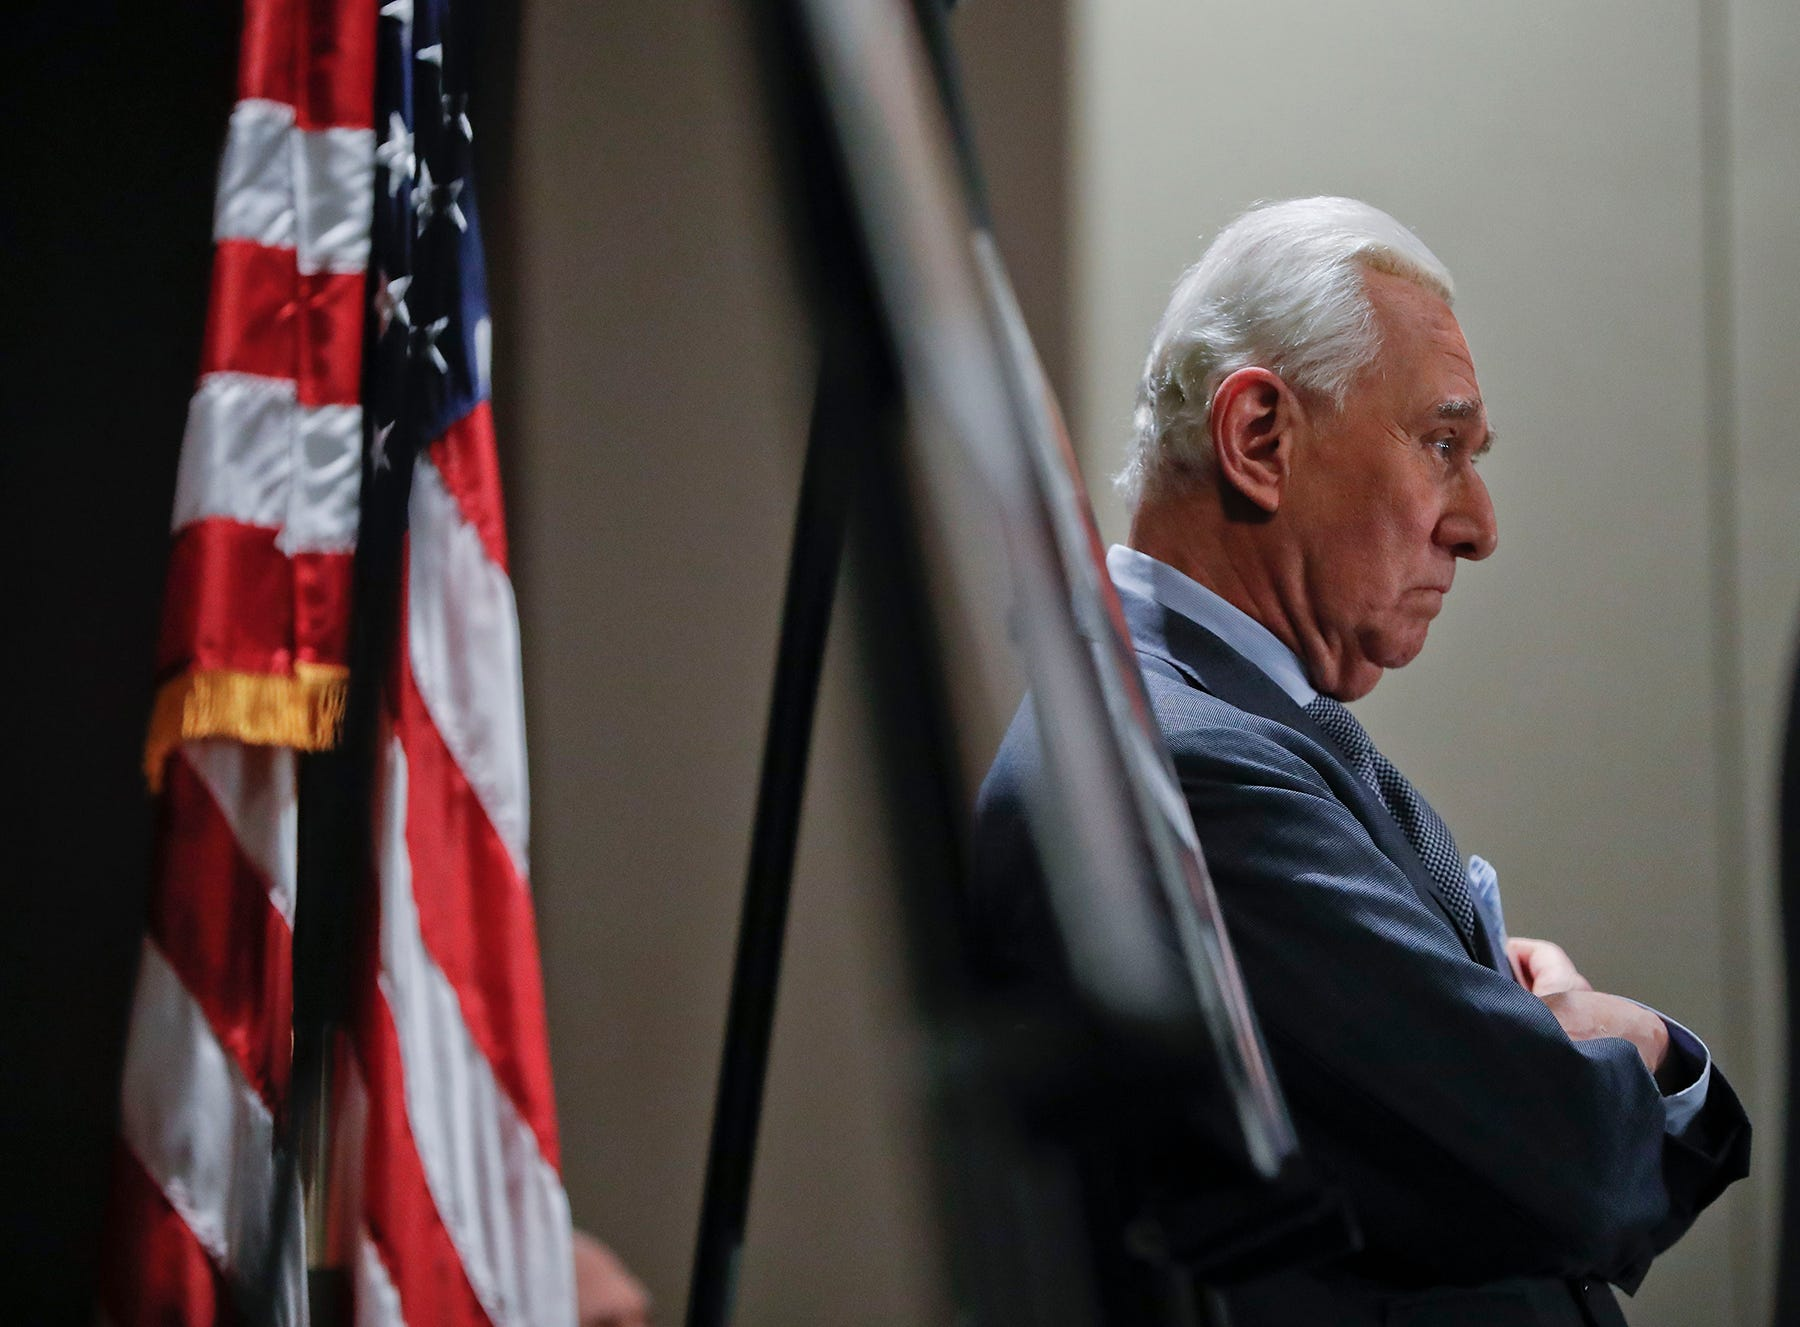 Roger Stone, longtime friend and confidant of President Donald Trump, waits to speak to members of the media in Washington, Thursday, Jan. 31, 2019.